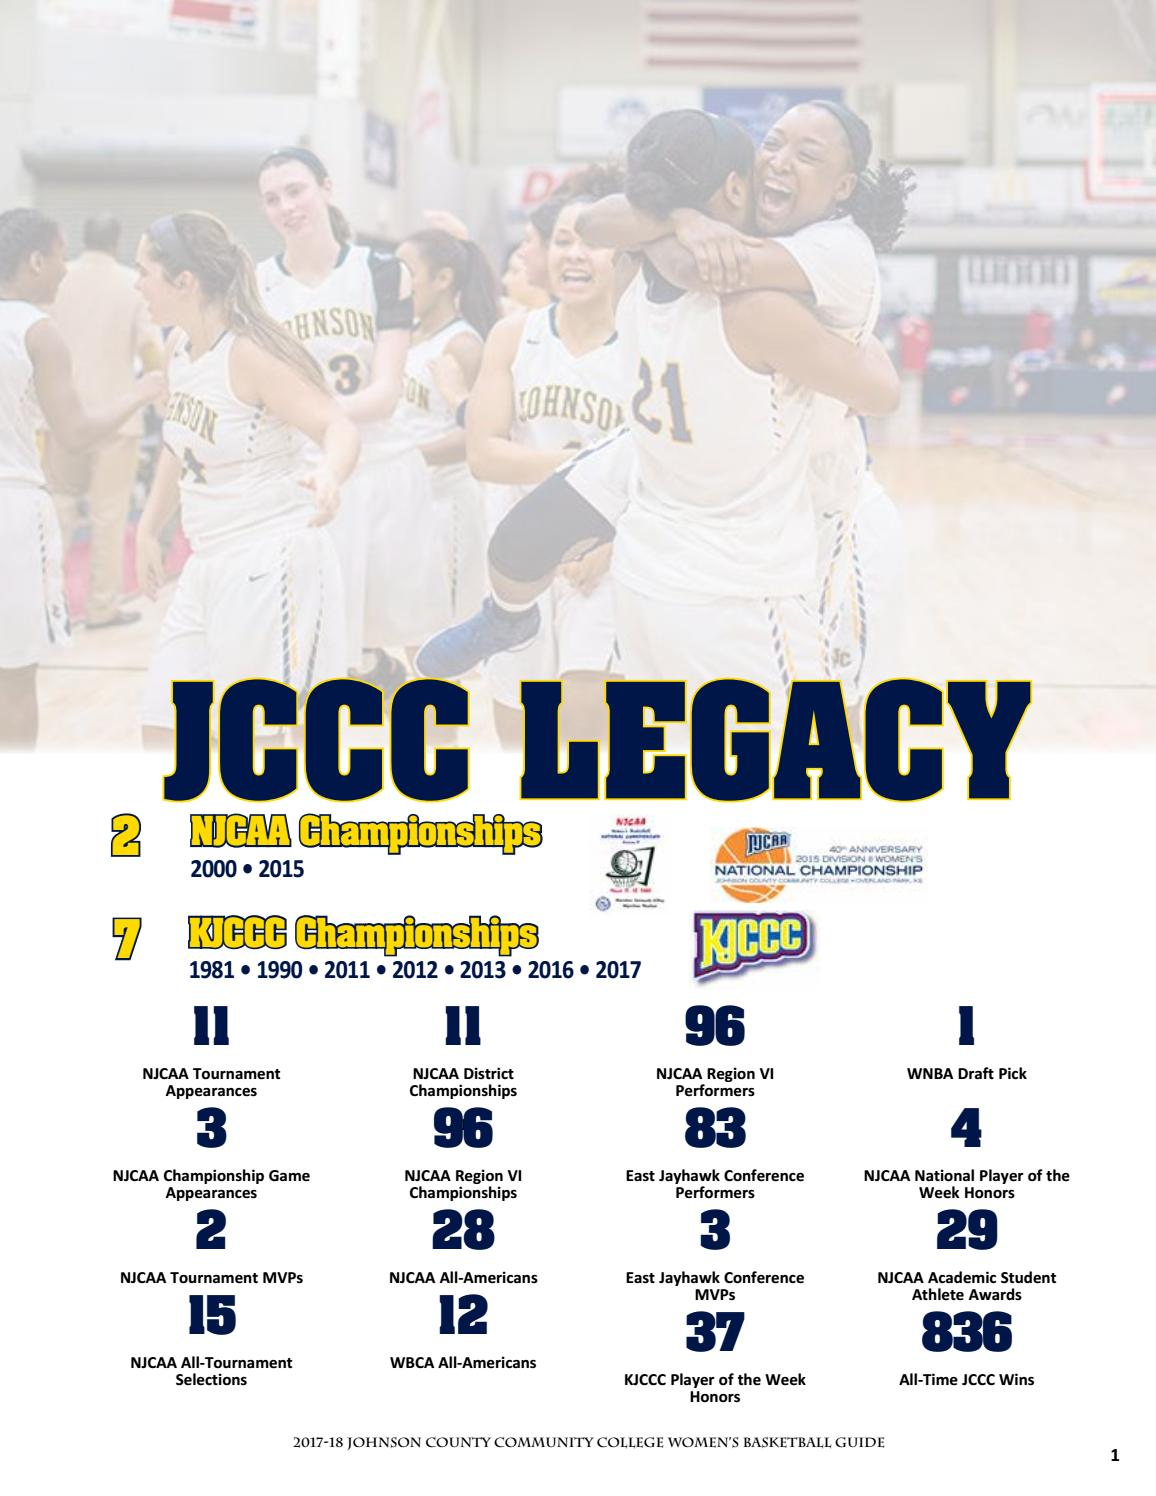 timeless design b084c 67d97 2017 18 jccc women's basketball guide by Chris Gray - issuu